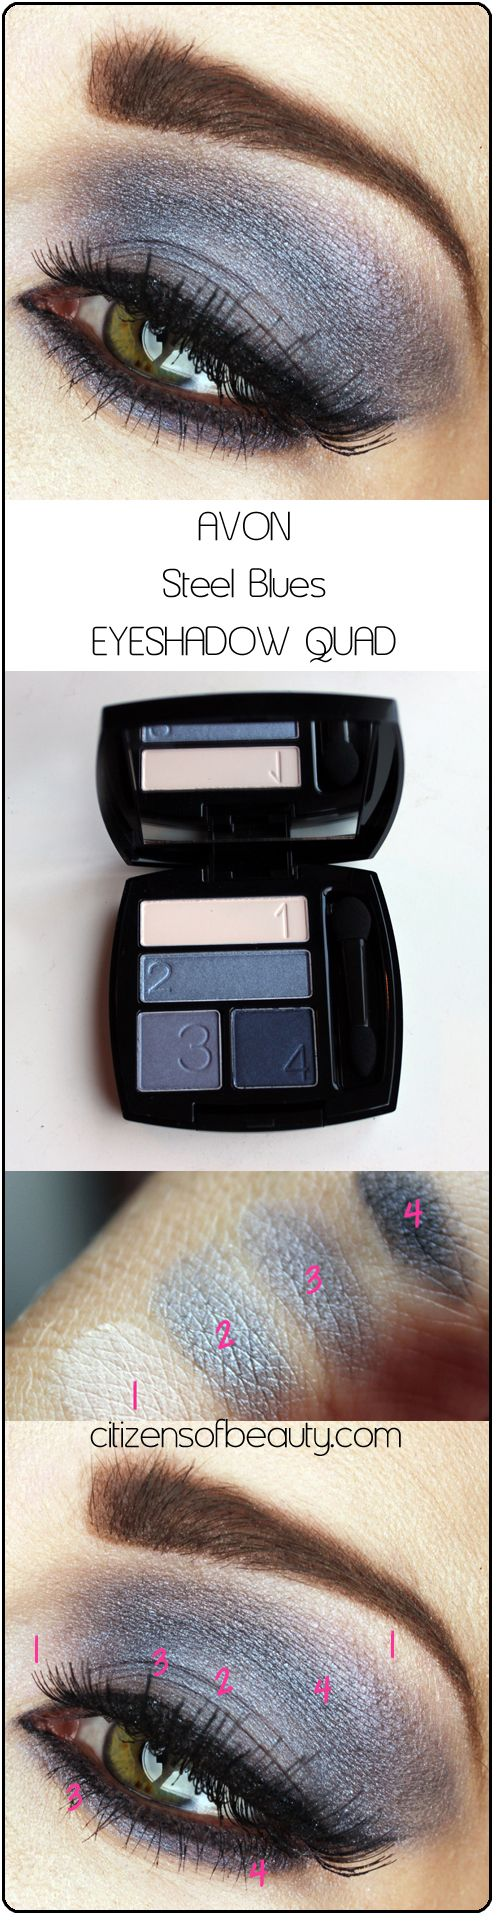 AVON Steel Blues eyeshadow quad copy Avon Eyeshadow Quads: Shockingly Good